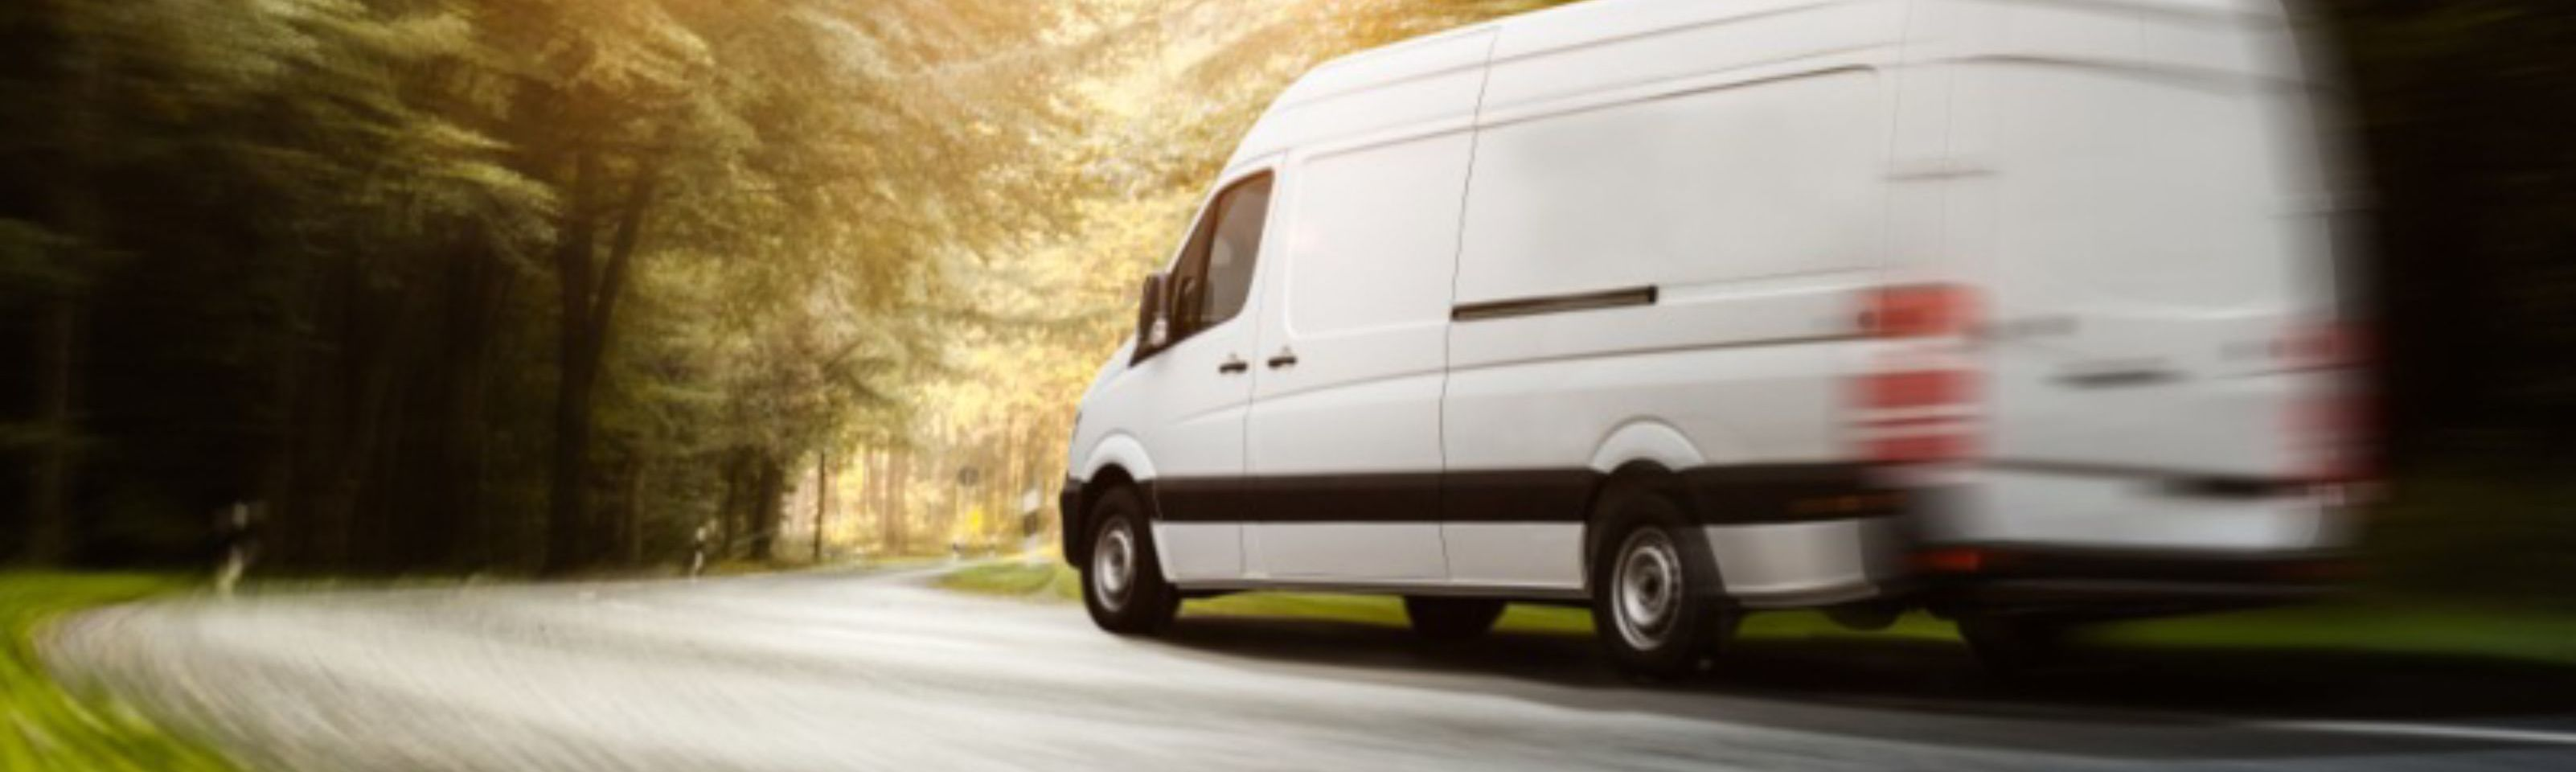 Over 80% of vans are dangerously overloaded. Is yours?